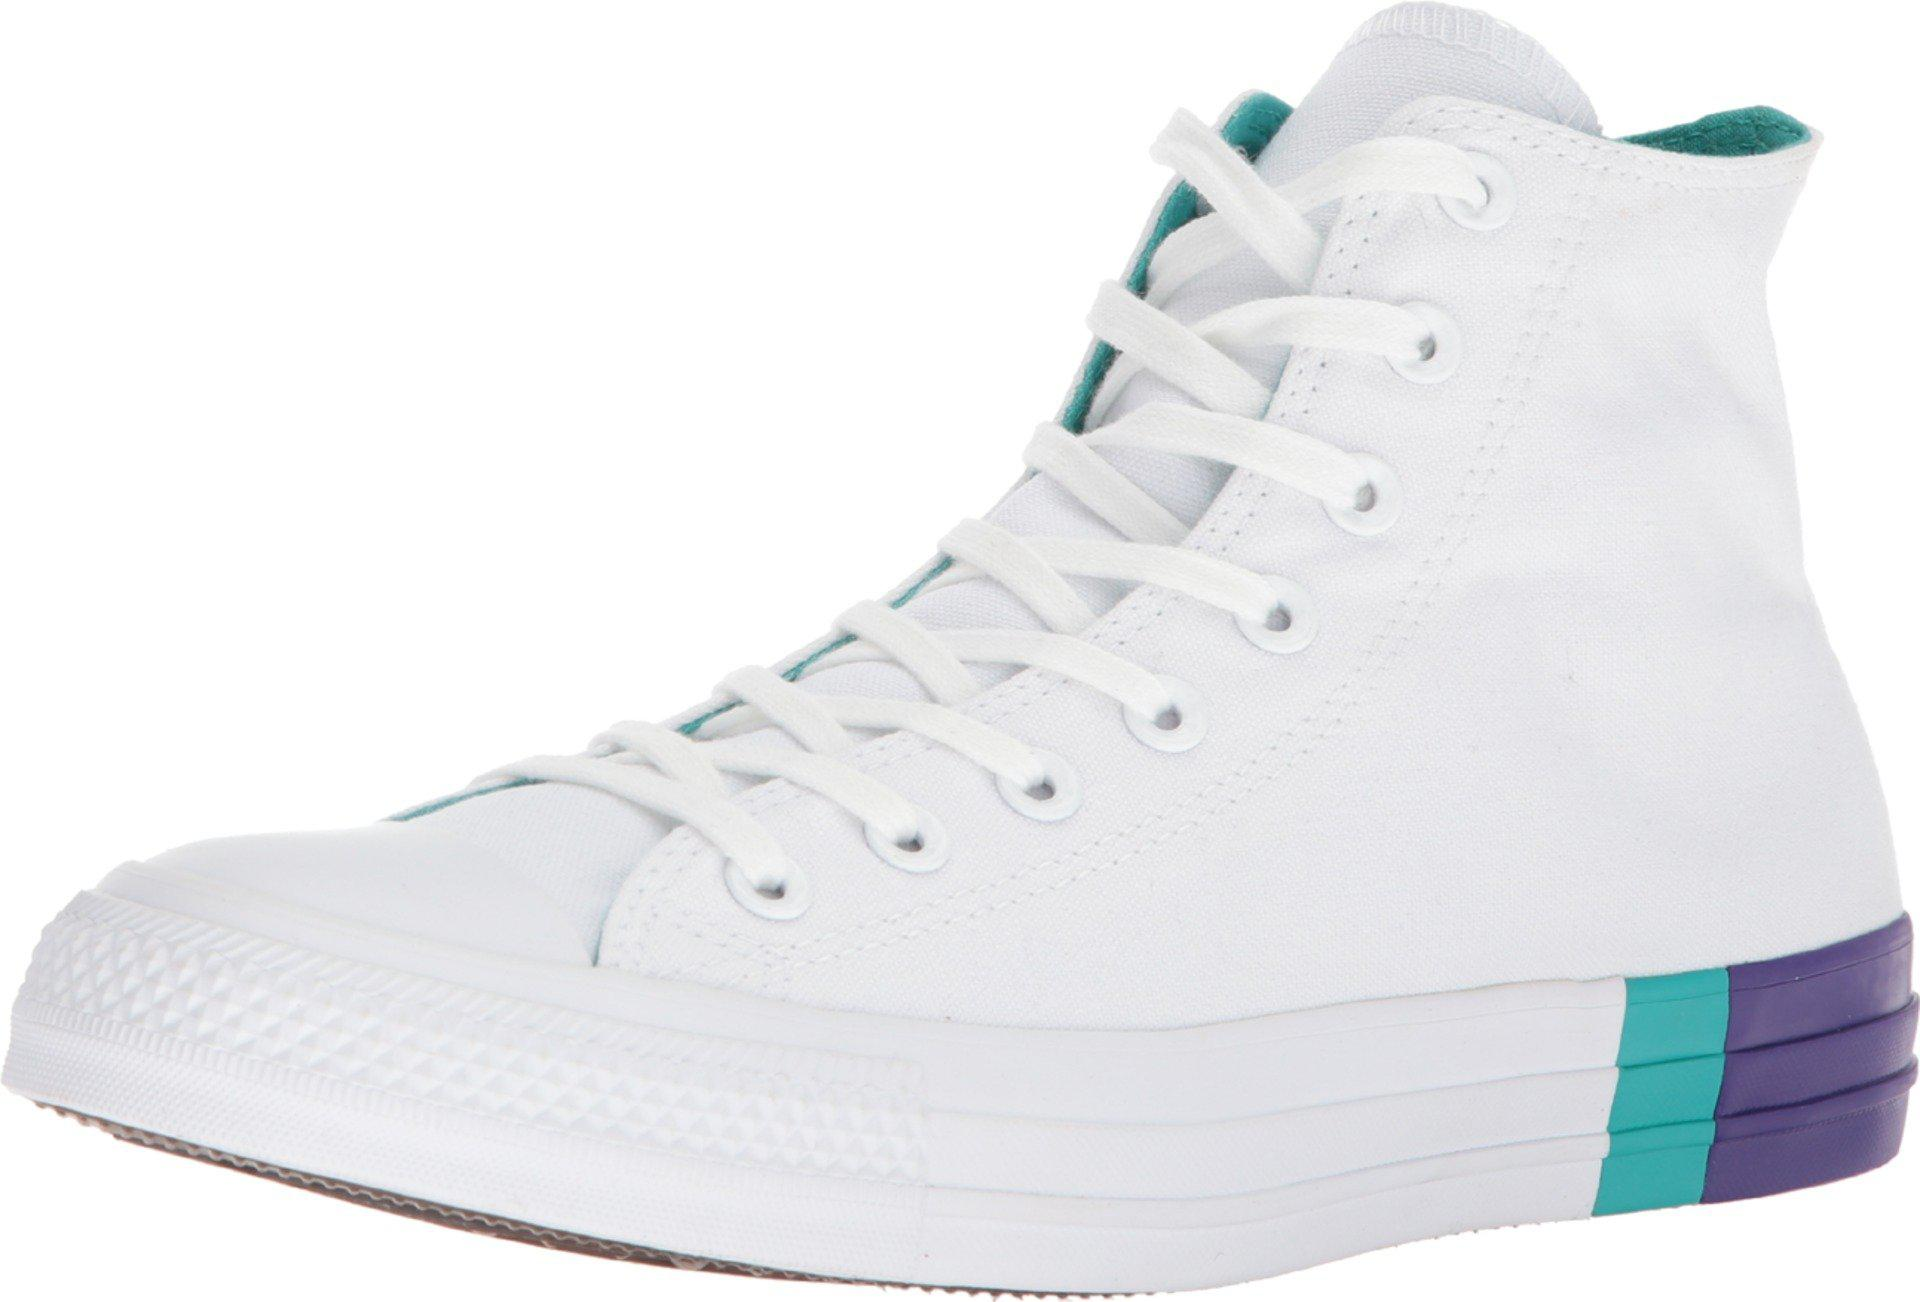 Converse Chaussures Chuck Taylor All Star Hi Tri-Block Midsole Converse Soldes QuicJlcta